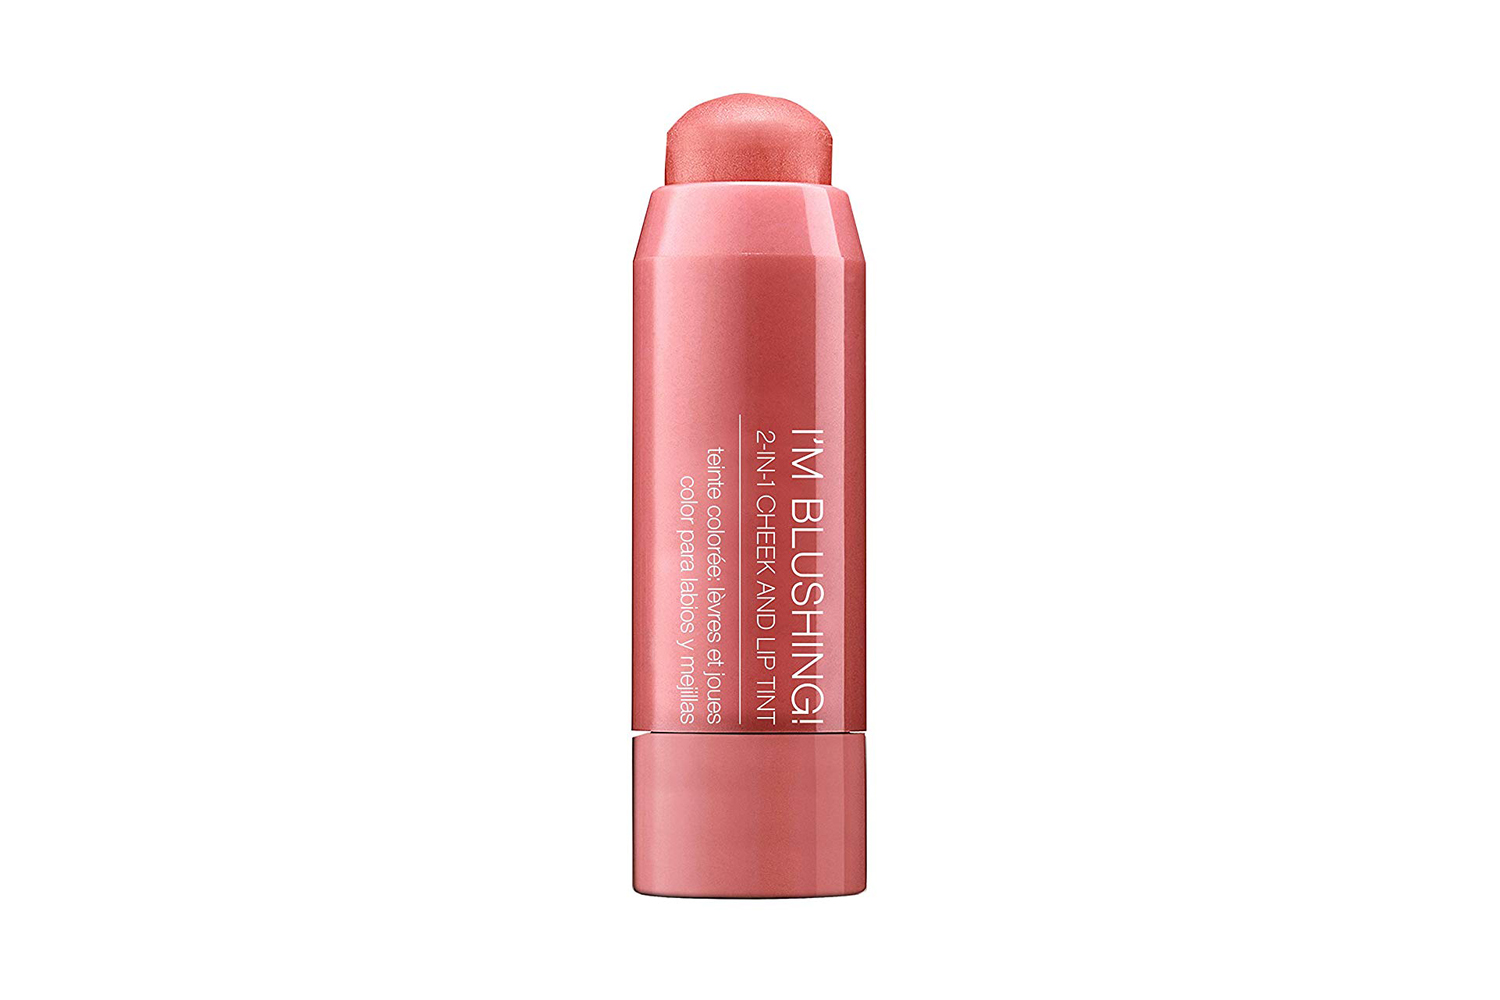 Blush for blondes